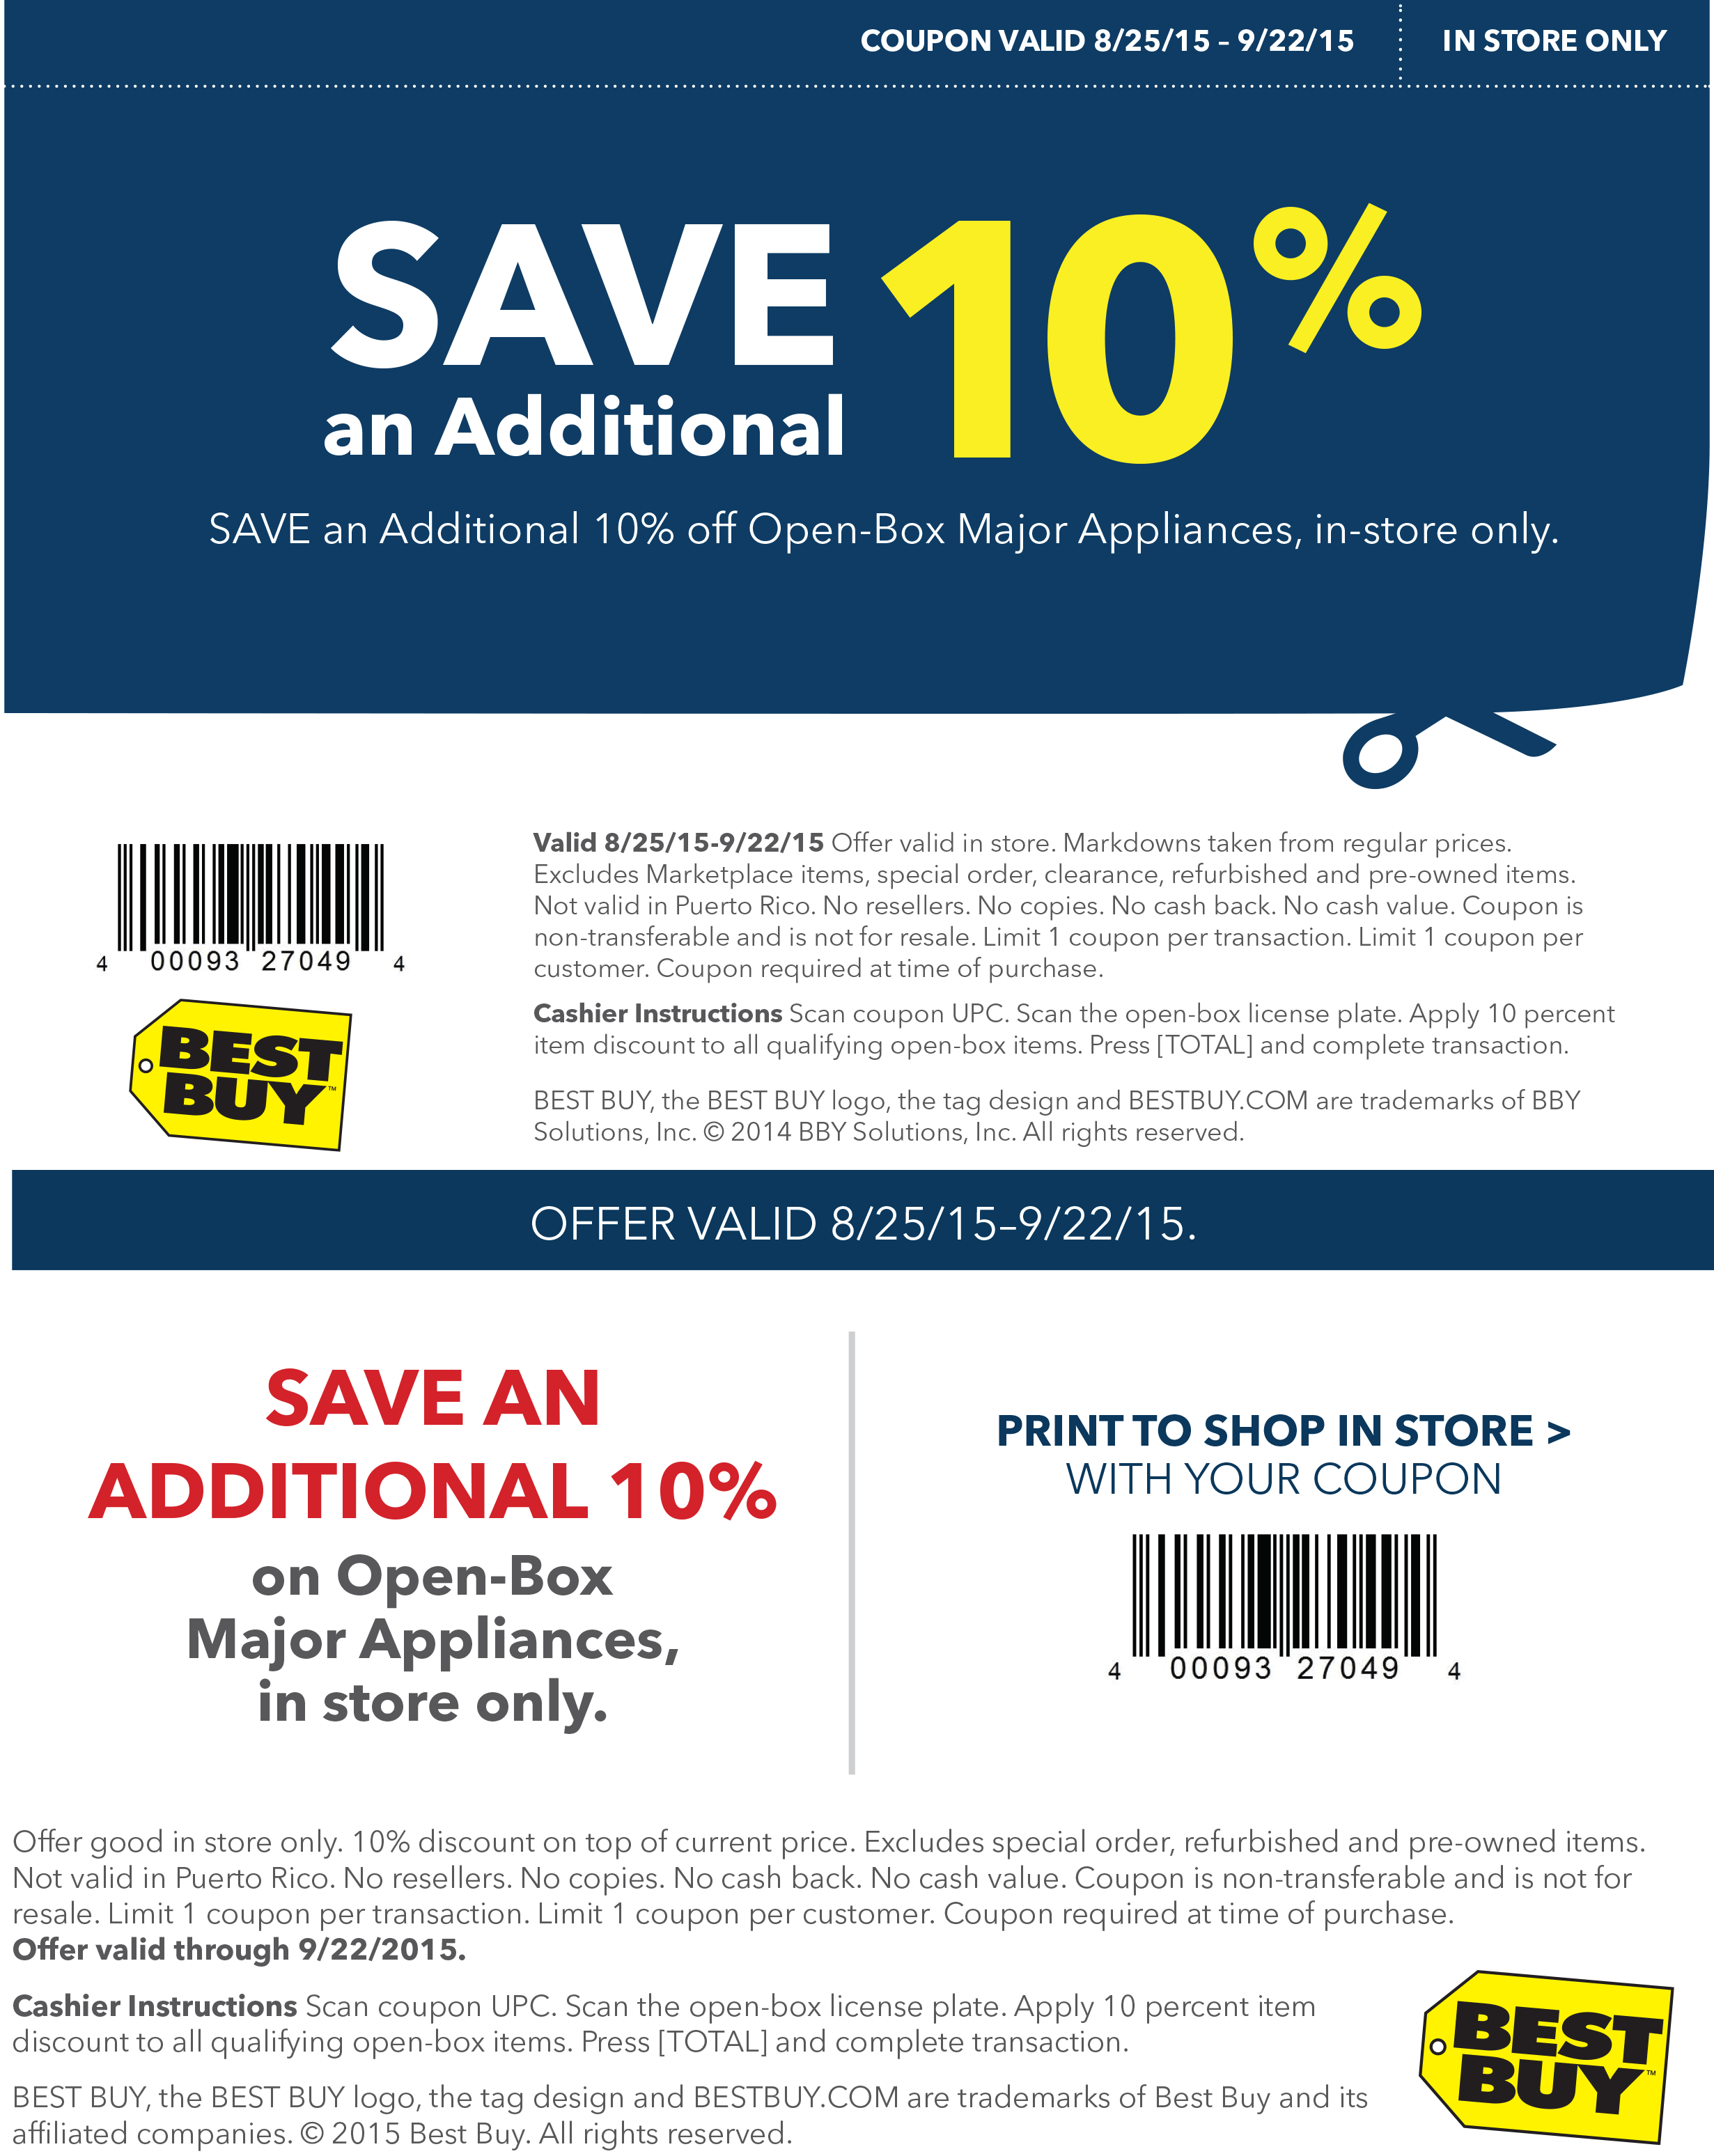 Best buy coupon code